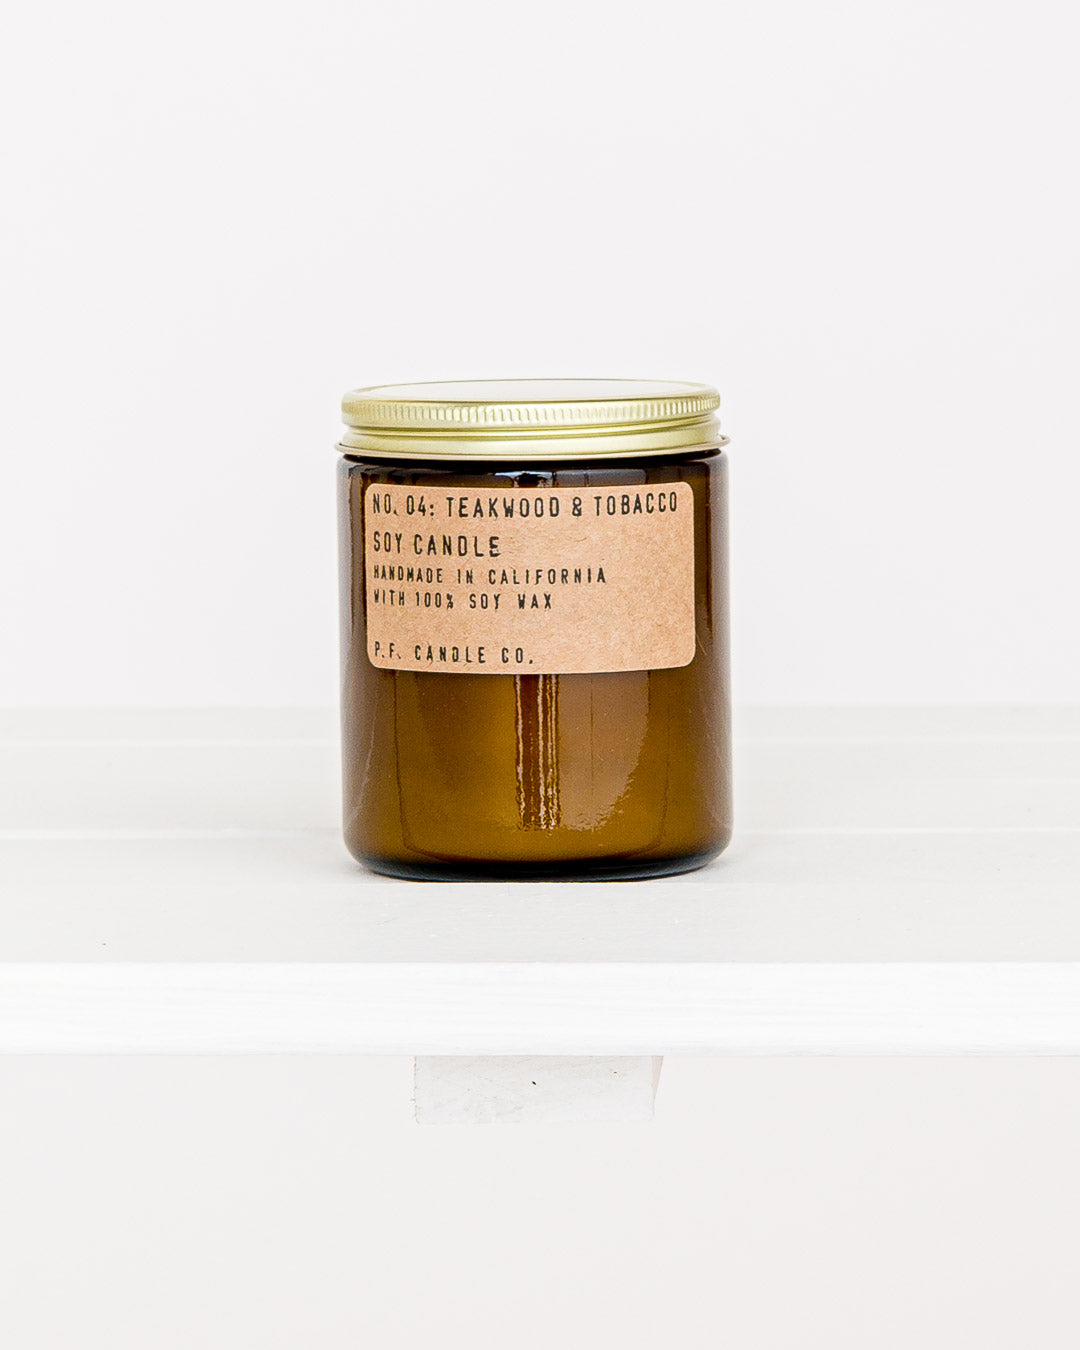 PF Candle Co. // Kerze No. 04 Teakwood & Tobacco